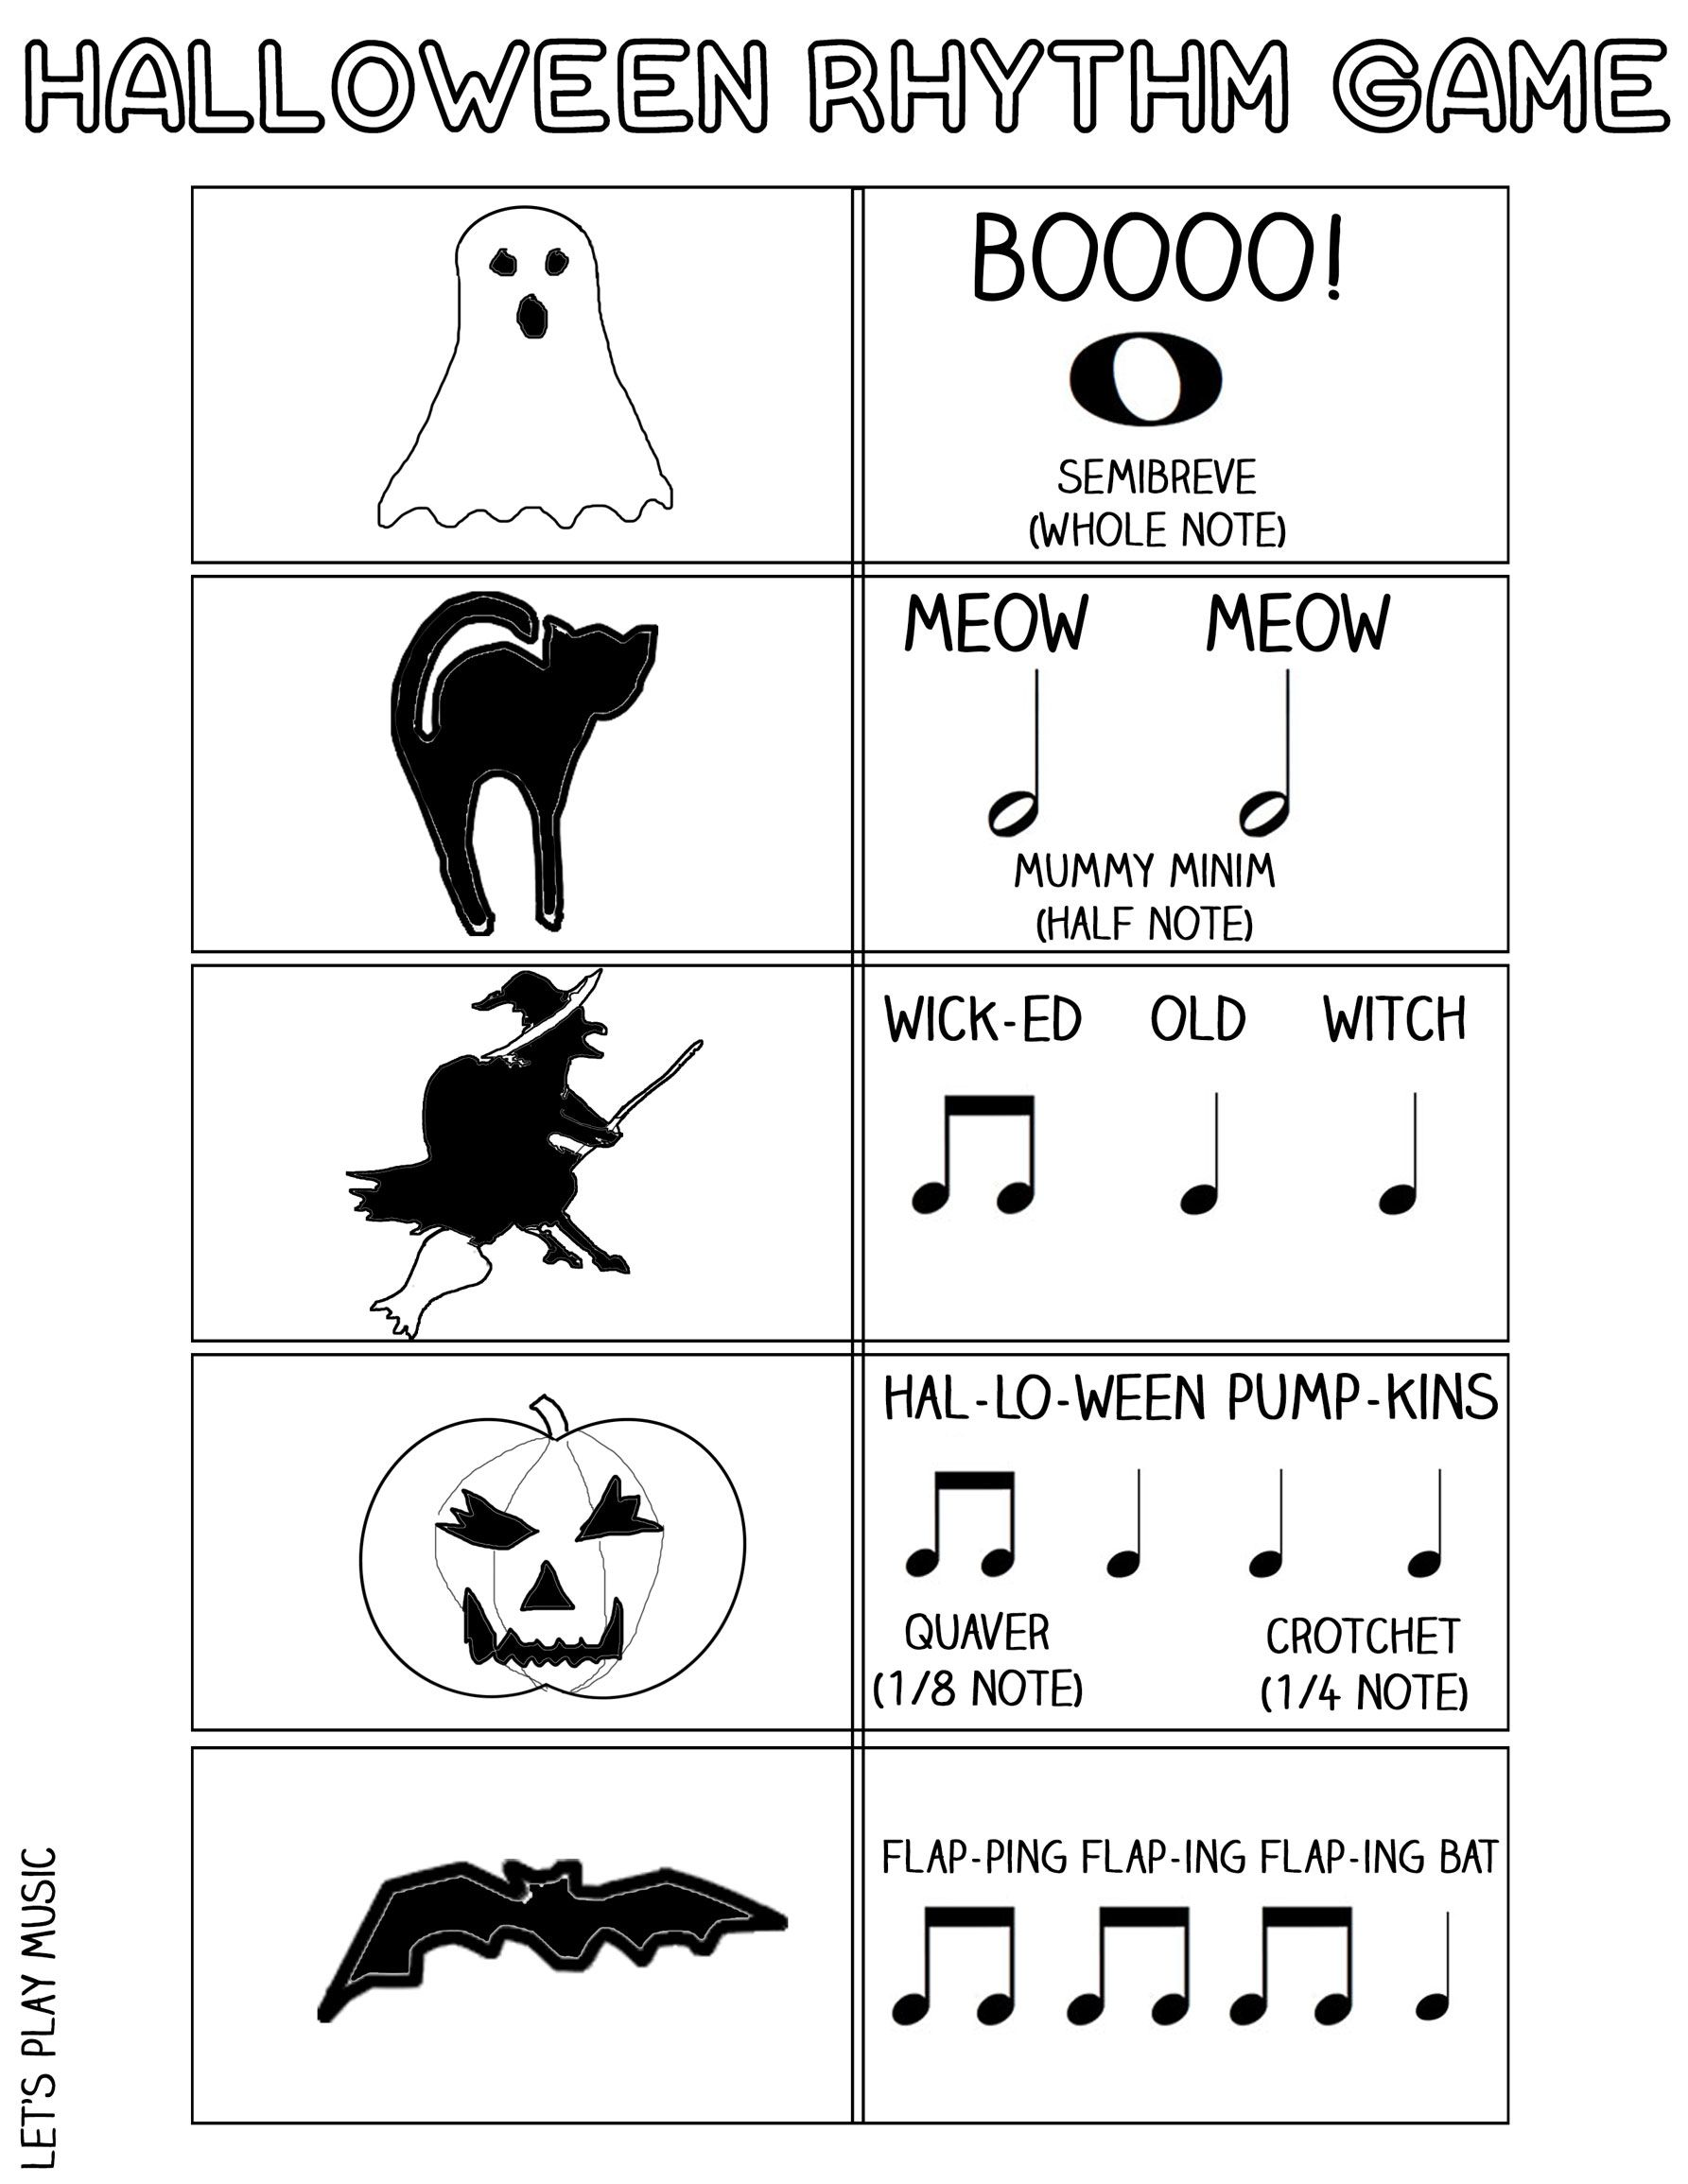 The Scary Witch Halloween Rhythm Game Holiday Pinterest